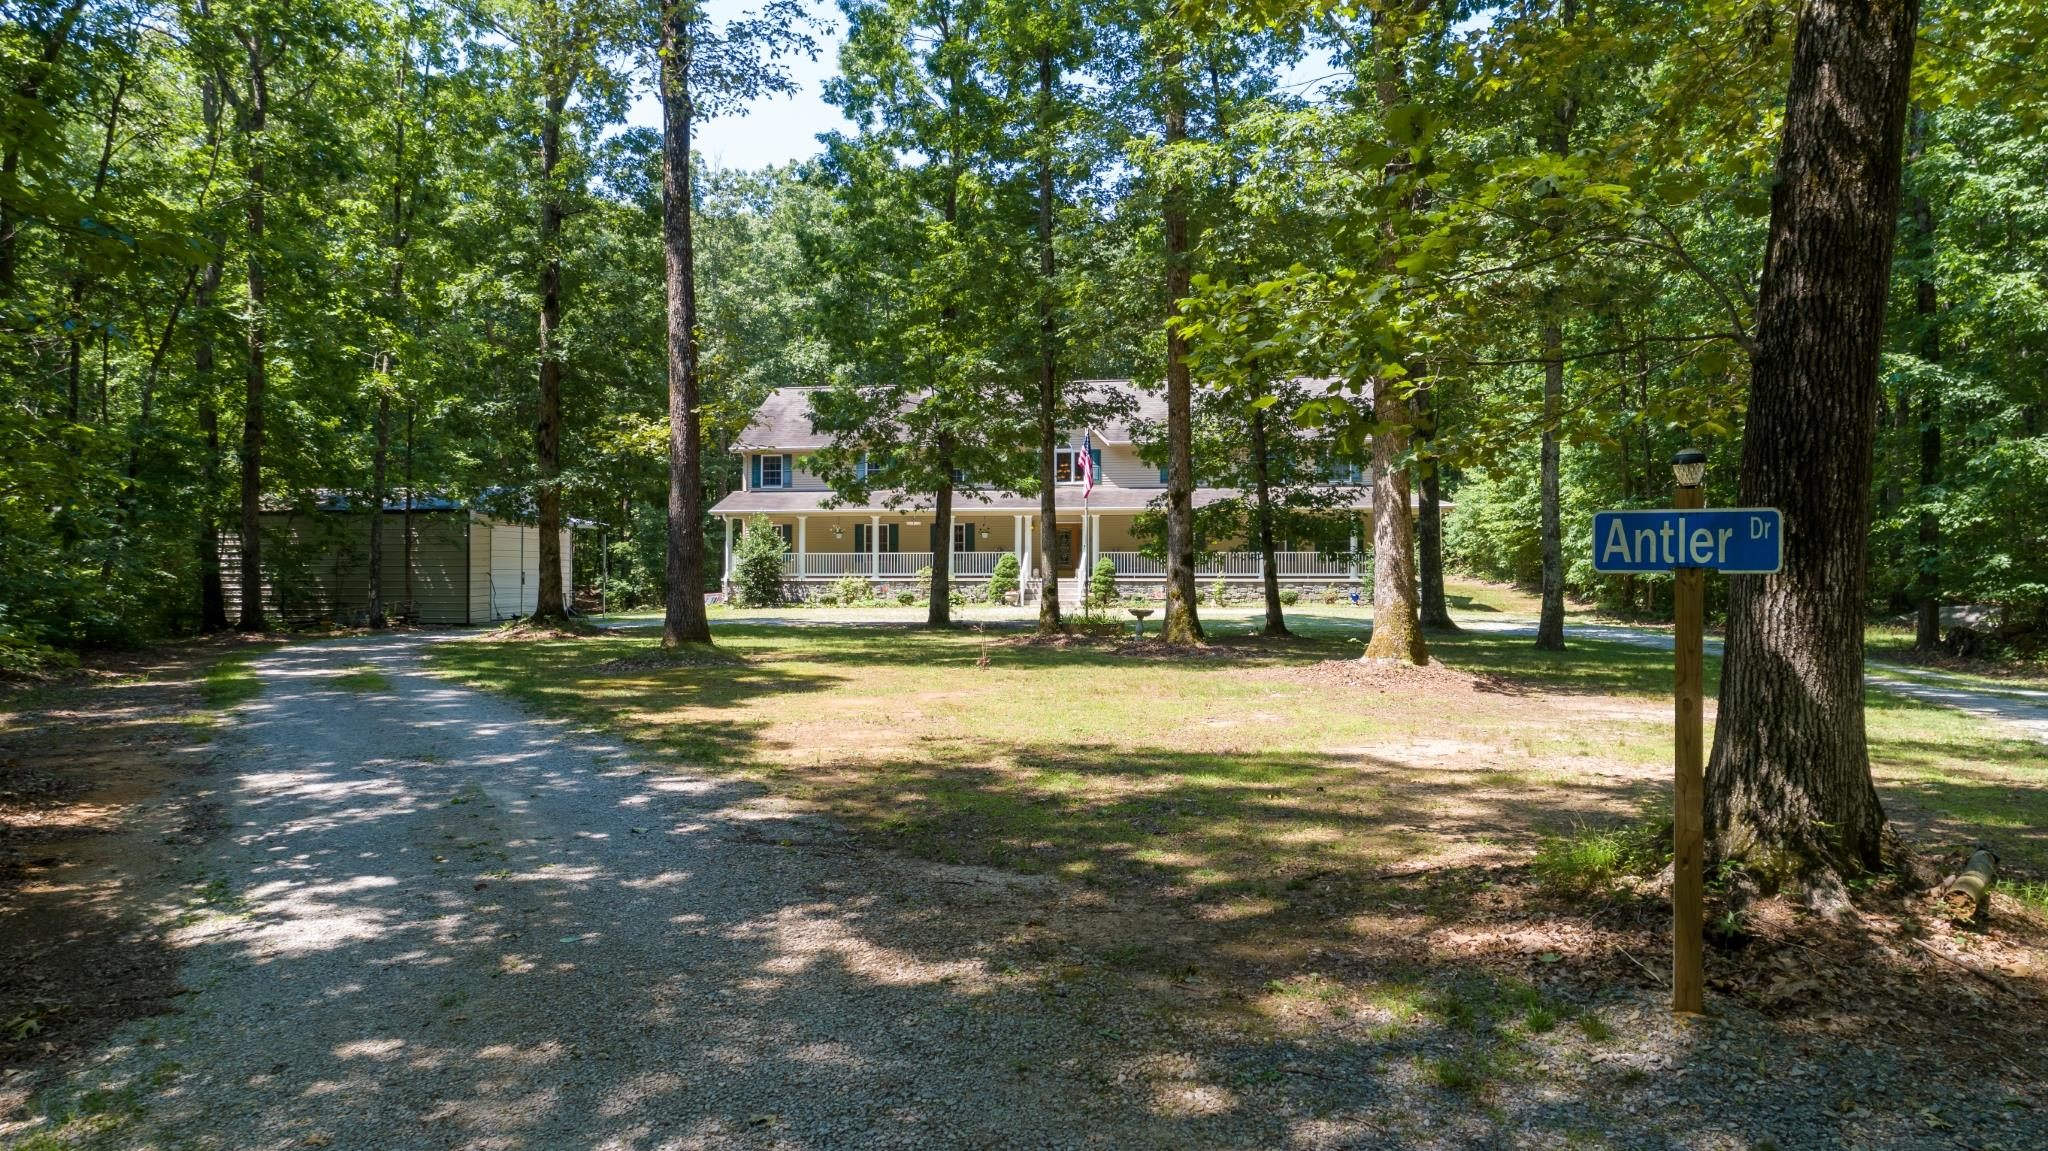 4870 Deer Run Rd, Altamont, TN 37301 - Altamont, TN real estate listing